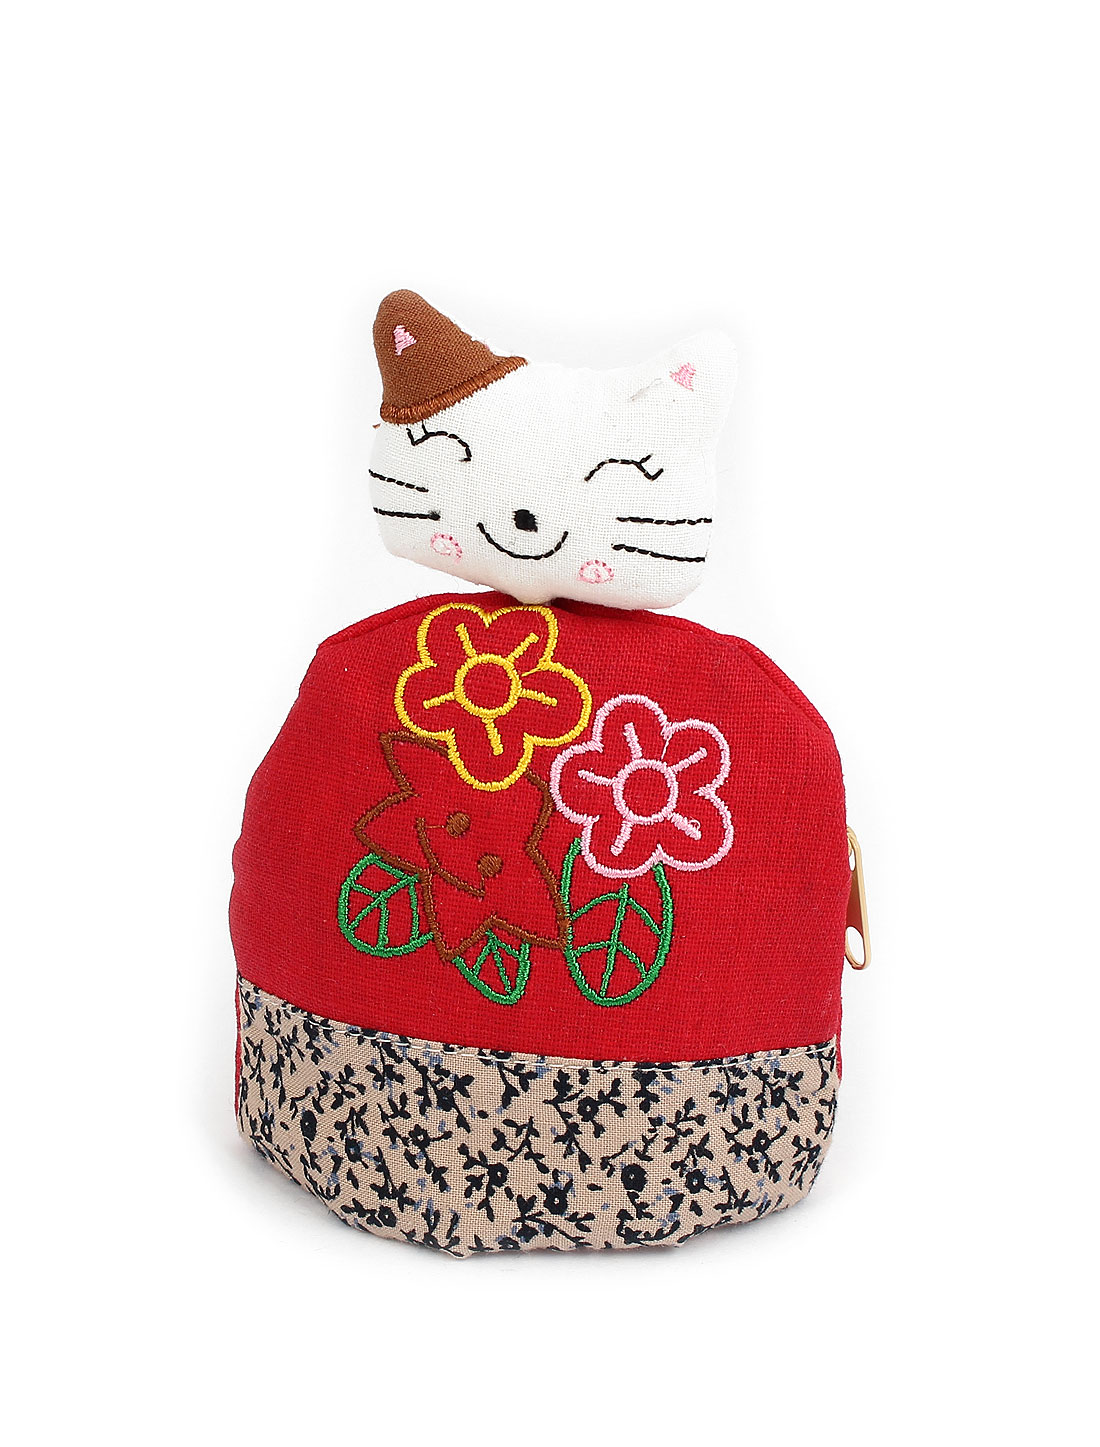 Lady Split Ring Strap Flower Pattern Cloth Cat Face Pendant Zip Up Coin Key Purse Bag Wallet Pouch Red